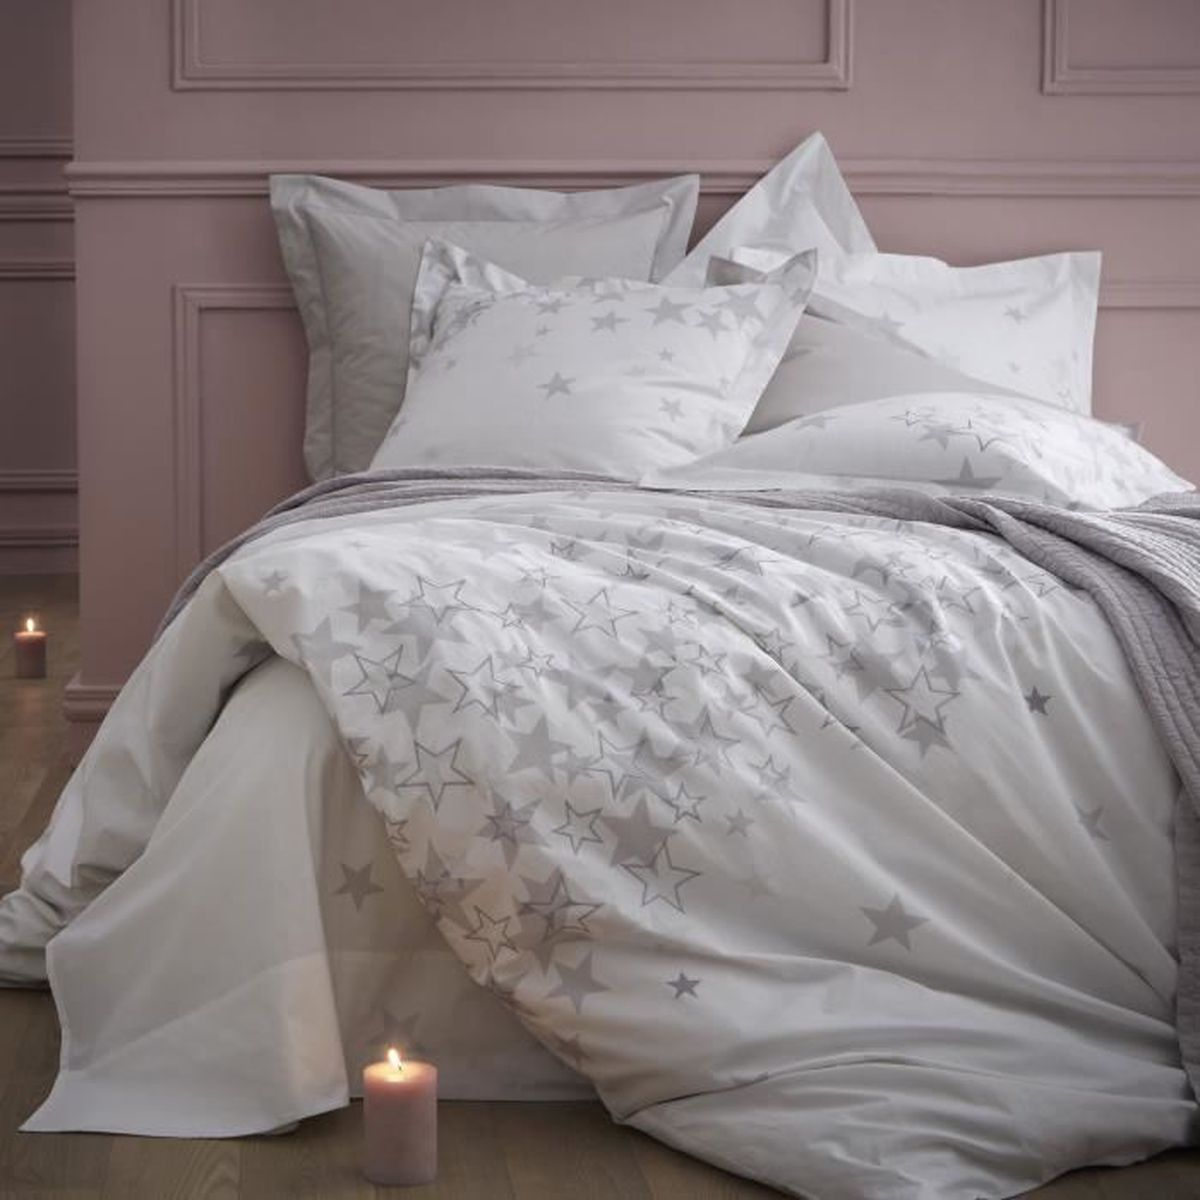 housse de couette 100 percale de coton broderie toile. Black Bedroom Furniture Sets. Home Design Ideas